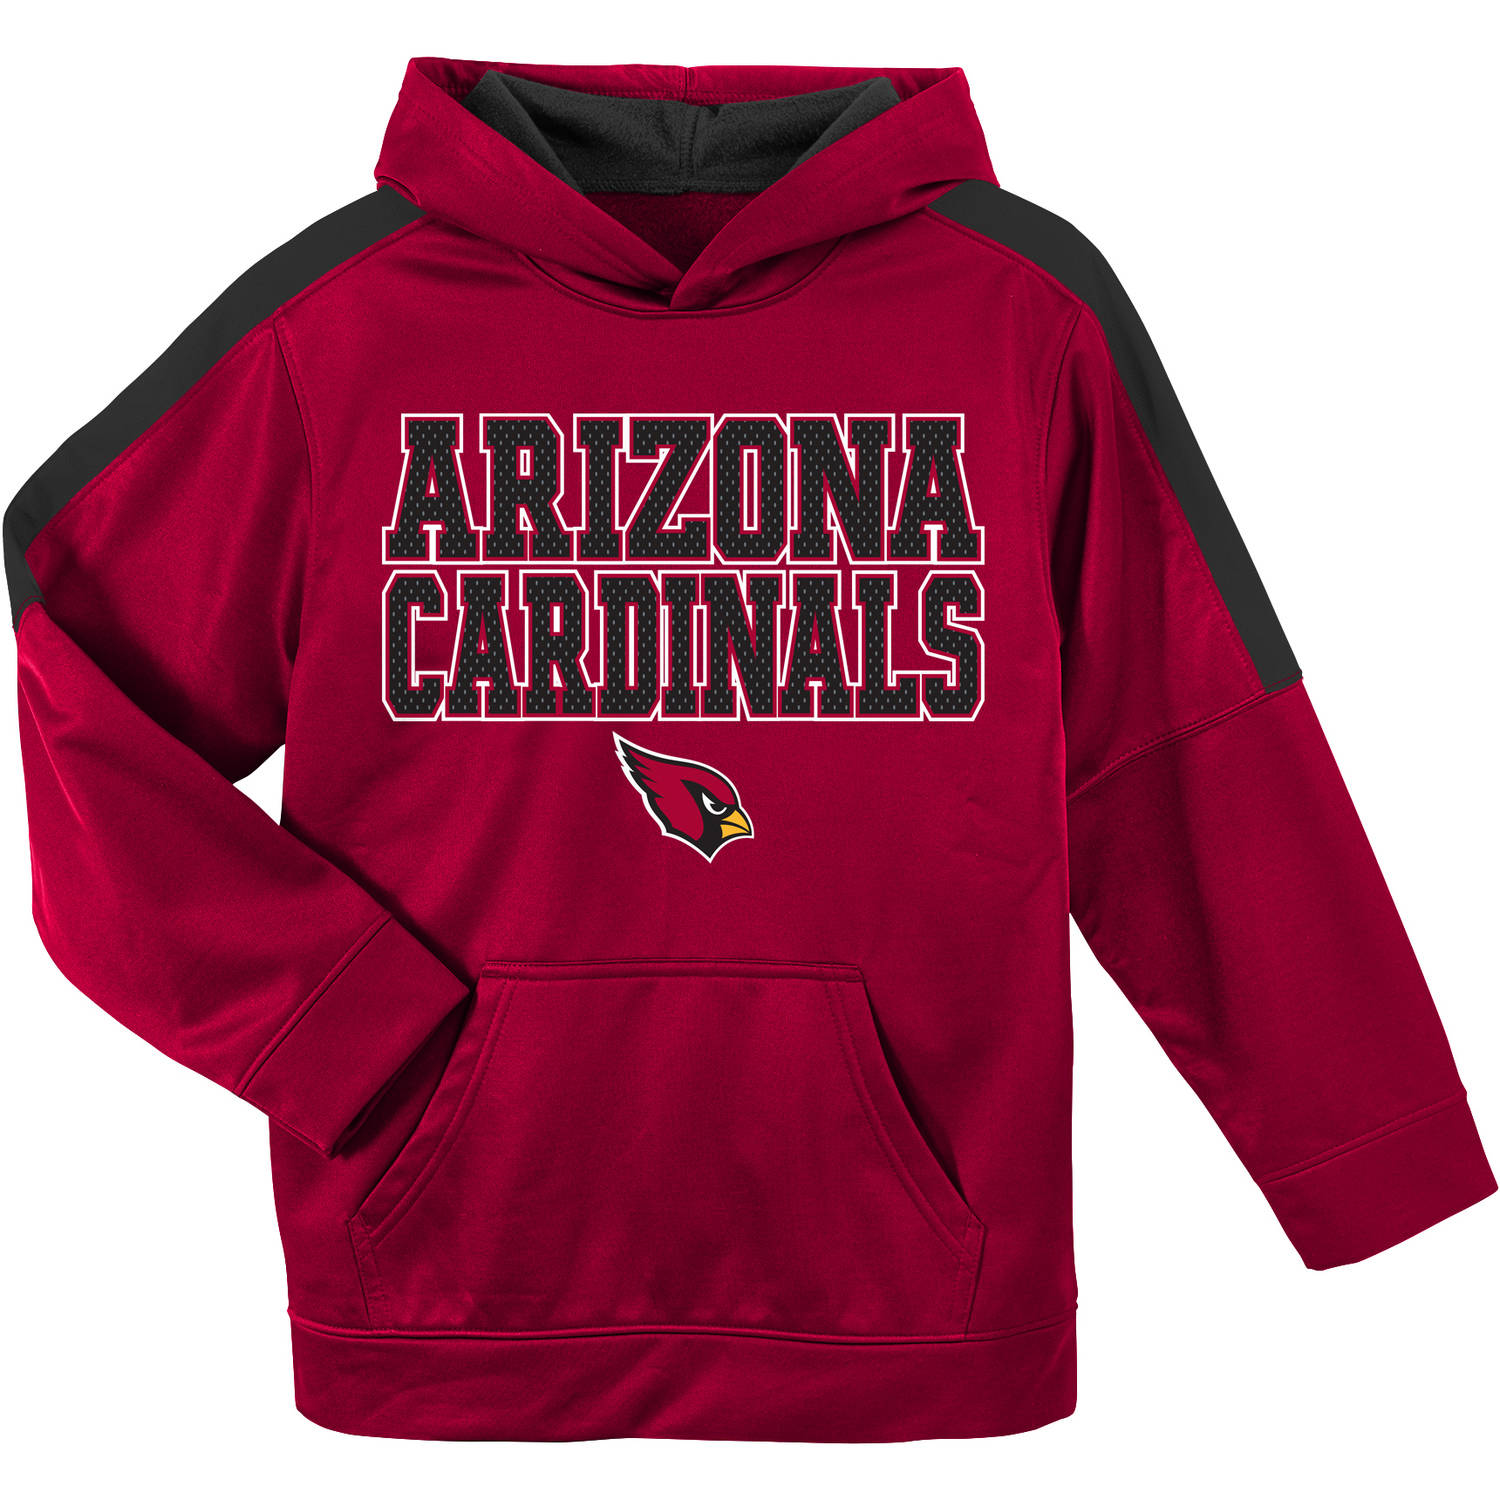 NFL Arizona Cardinals Youth Hooded Fleece Top by